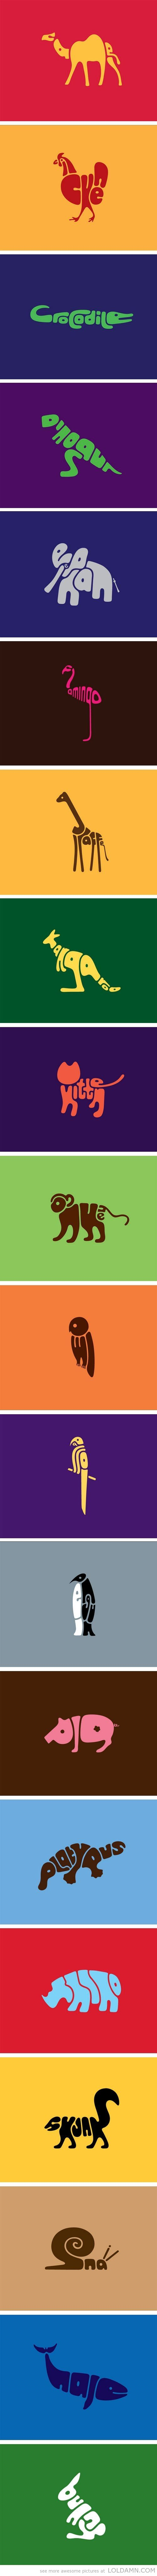 Word Animals- Designer: Dan dan@wordanimals.co.uk  I could totally see these framed in a kids play room.